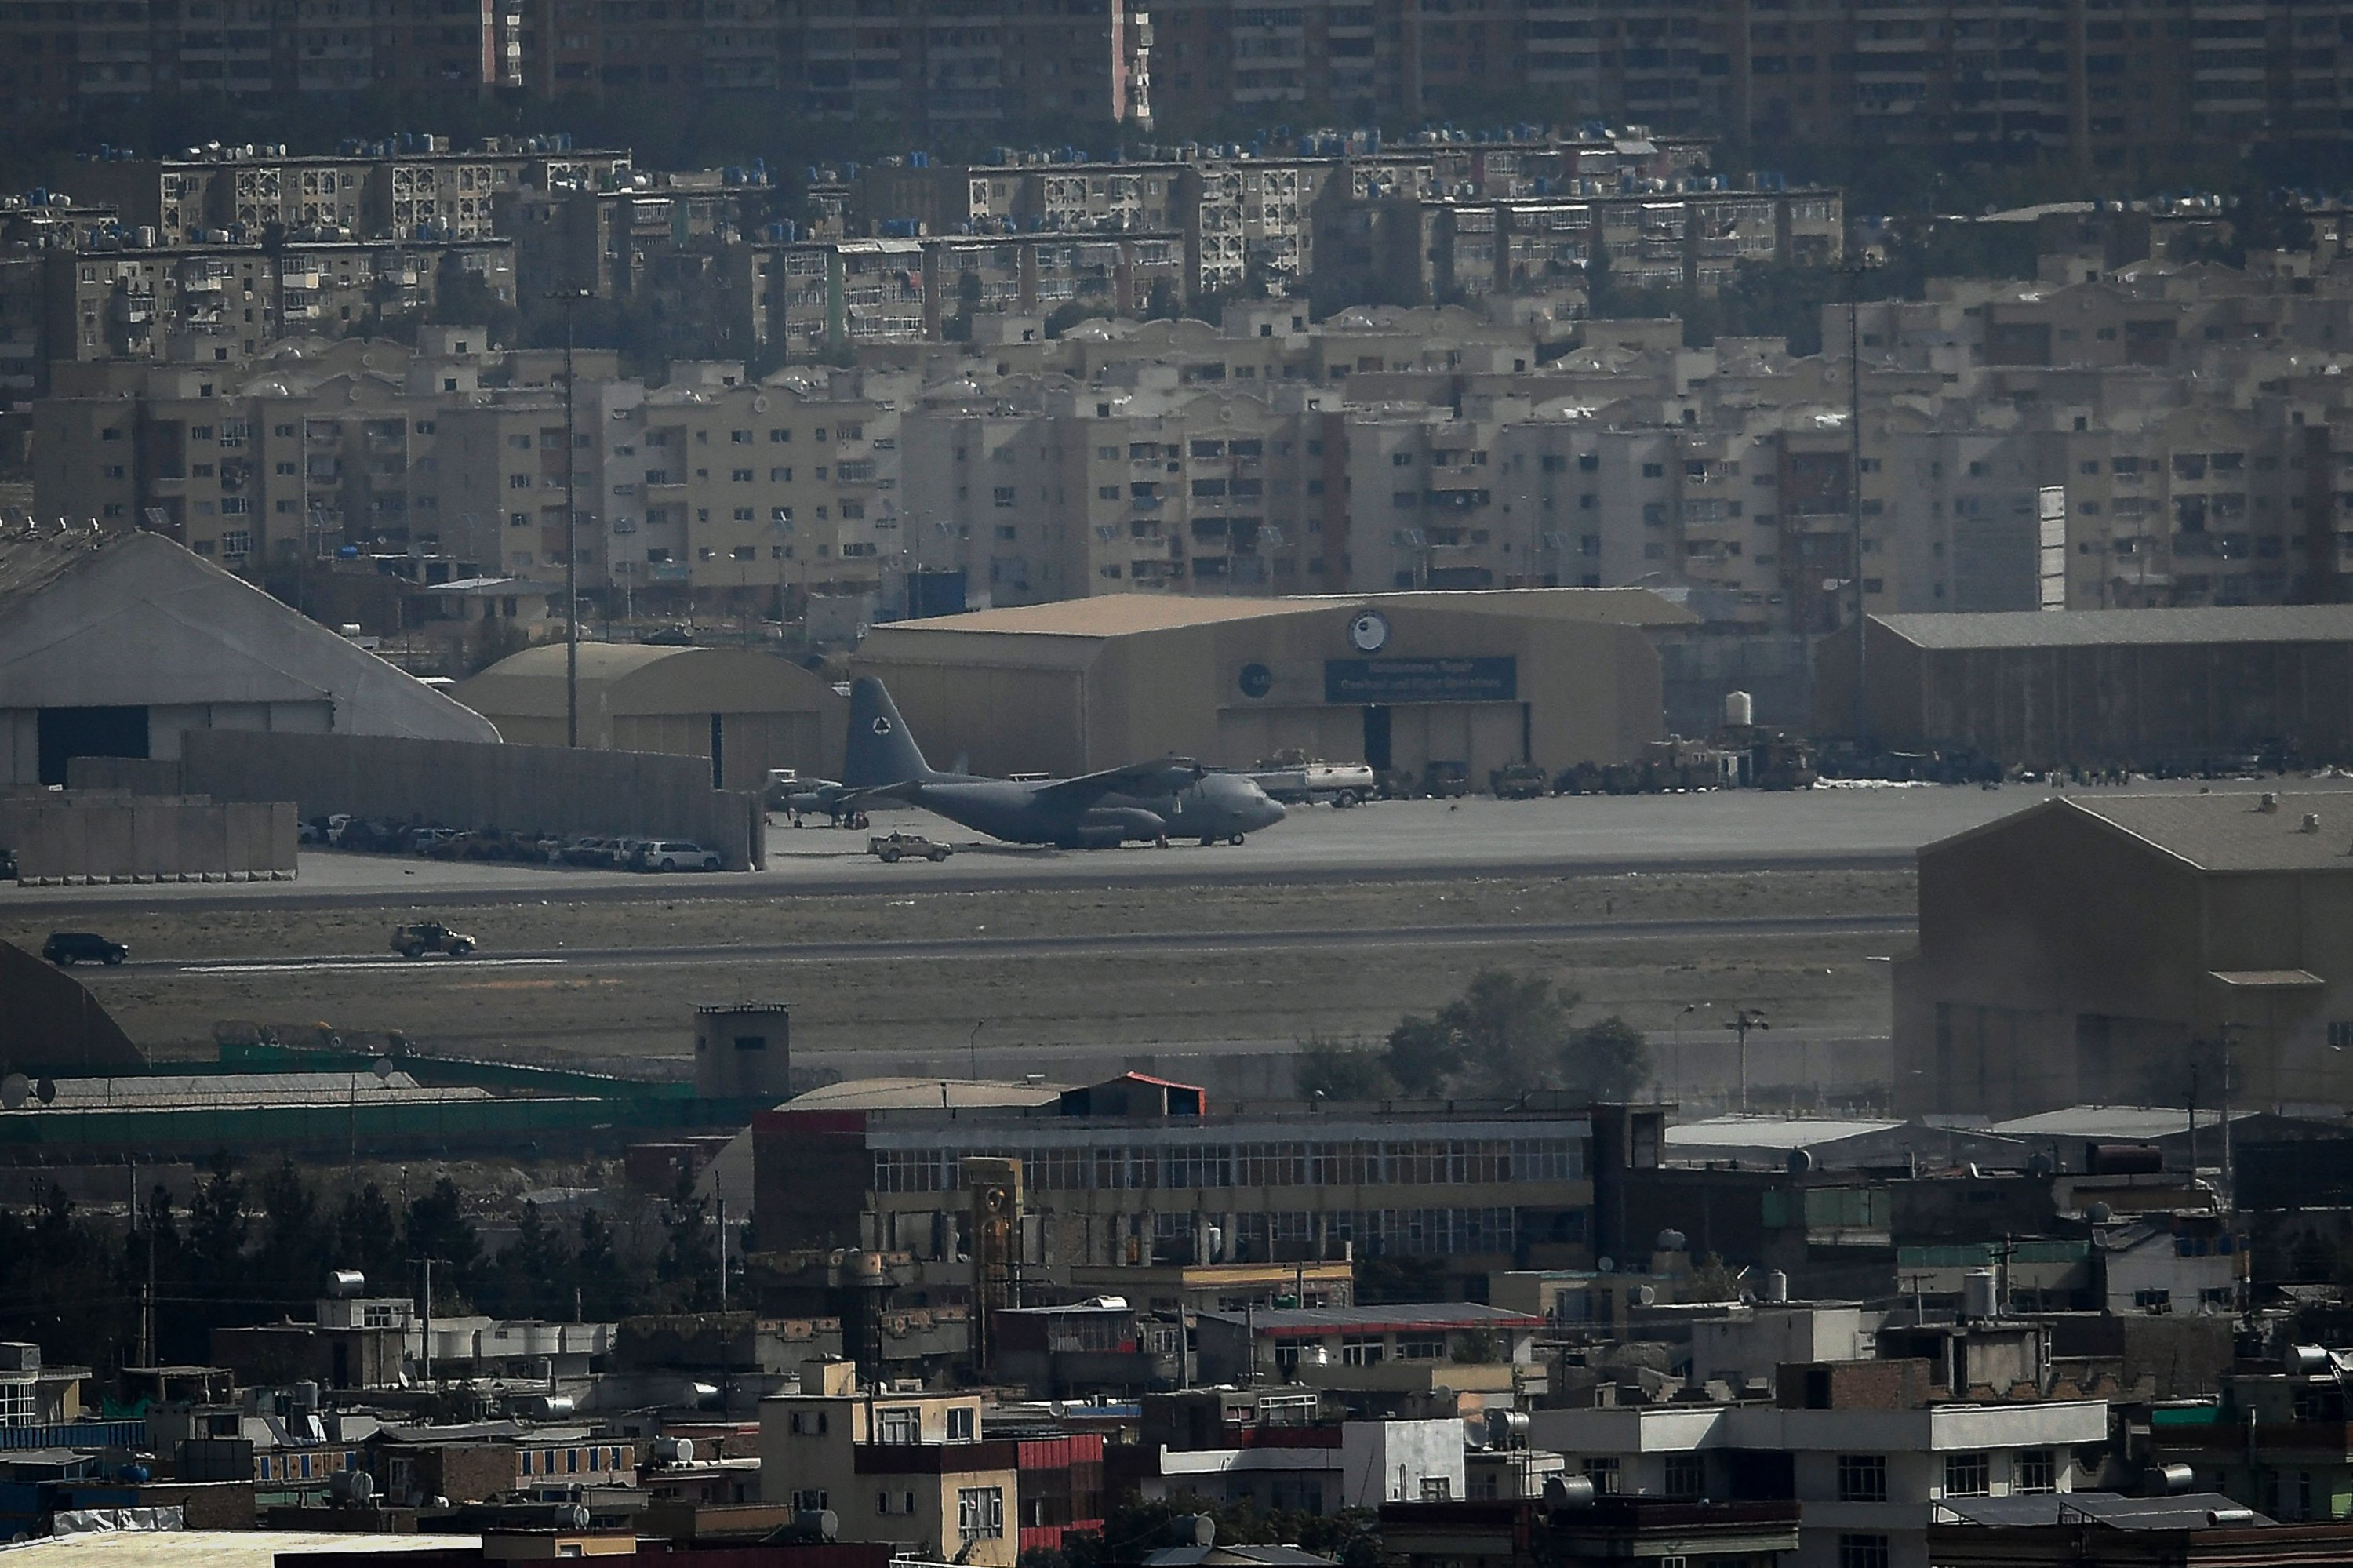 An aircraft is pictured at the airport after the U.S. pulled all its troops out of the country to end a brutal 20-year war, Kabul, Afghanistan, Aug. 31, 2021. (AFP Photo)